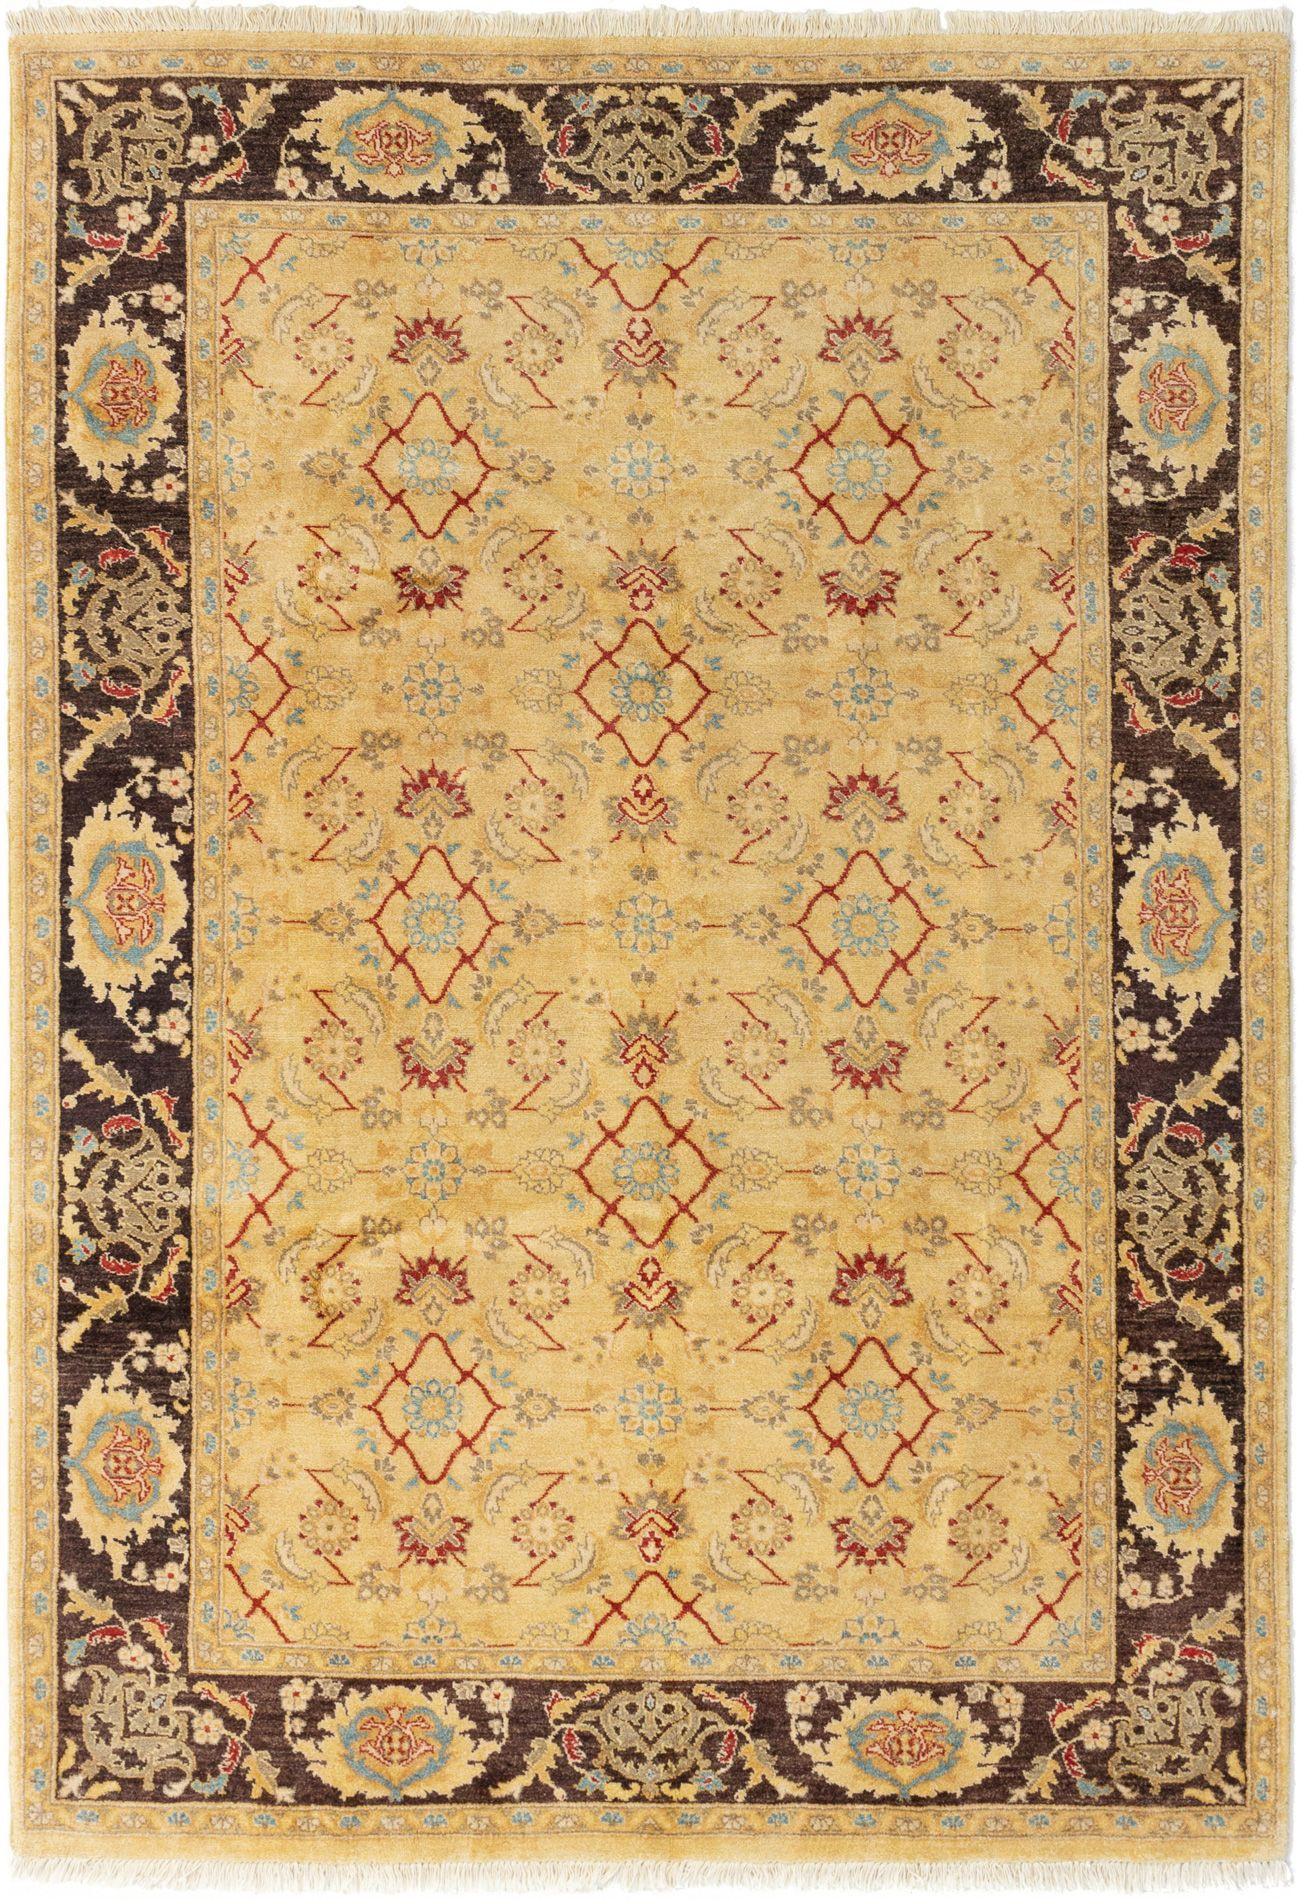 "Hand-knotted Chobi Finest Cream Wool Rug 6'0"" x 8'8"" Product Image"